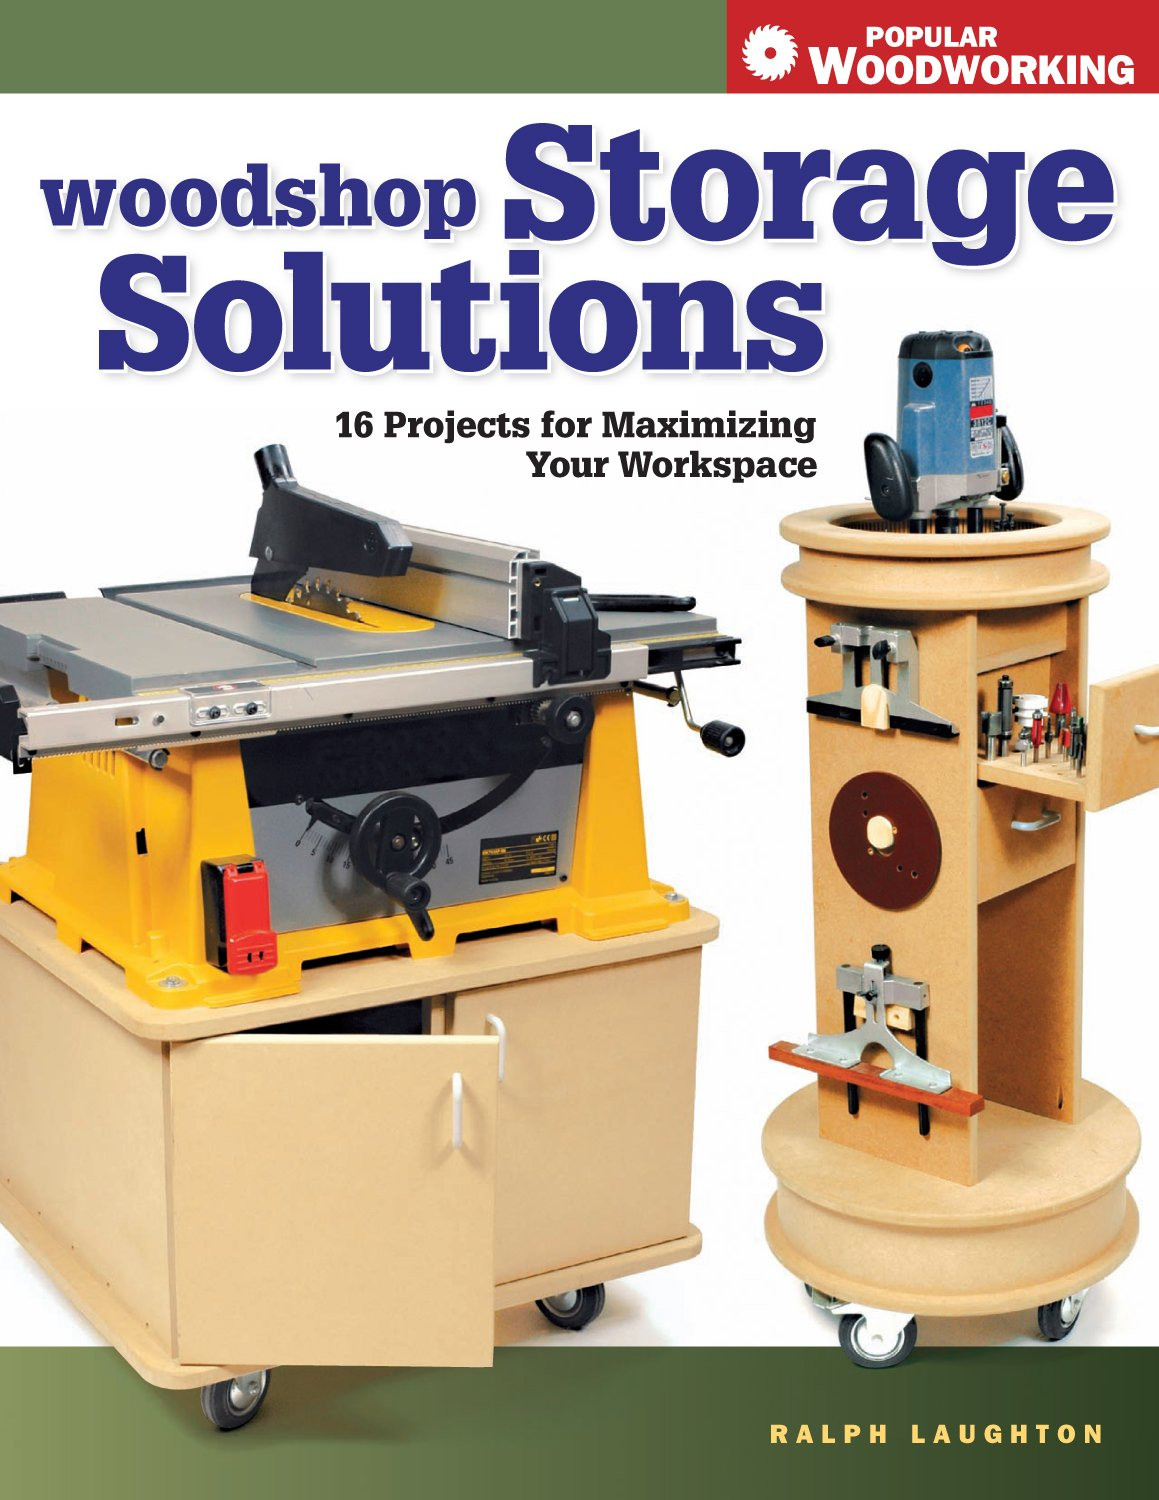 Woodshop Storage Solutions: 16 Projects for Maximizing Your Workspace (Popular Woodworking)